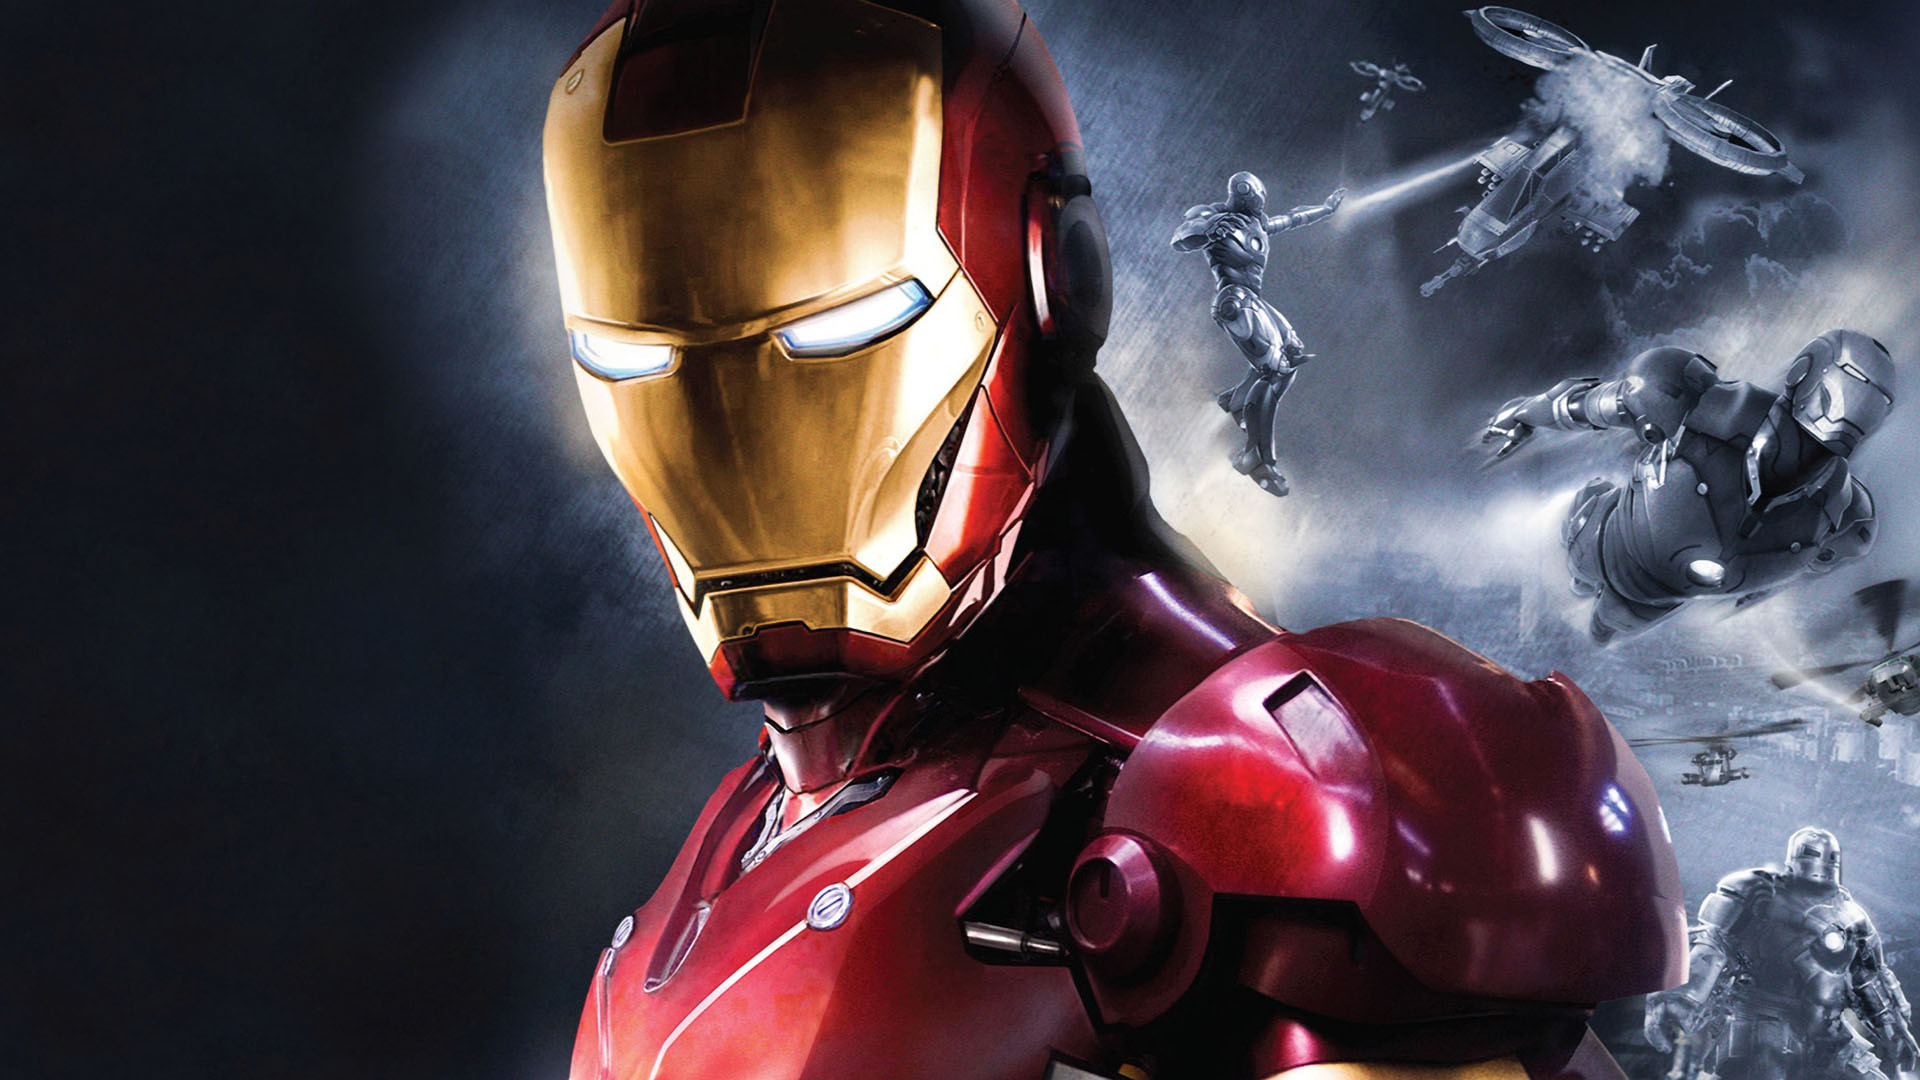 Iron Man 2 Wallpaper Hd Wallpapertag